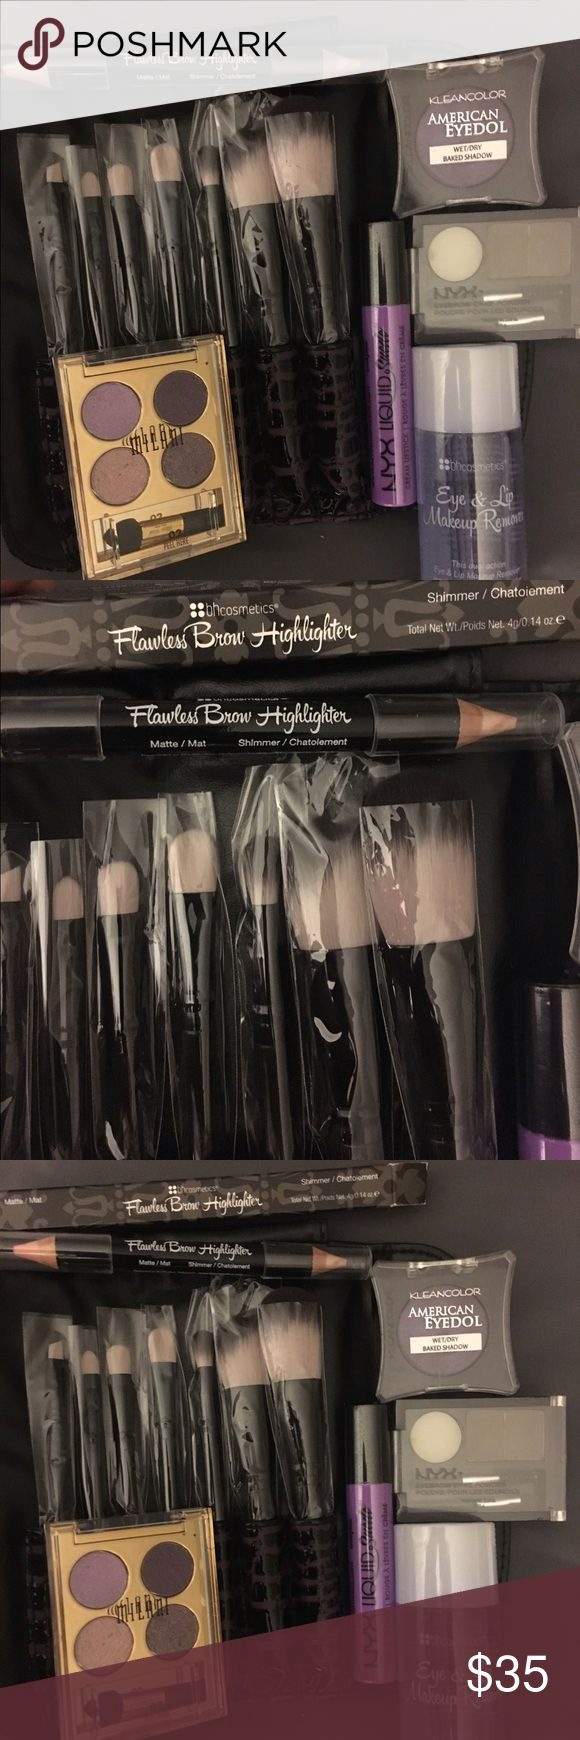 7pc makeup bundle- Priced fair! All brand new! Includes: 7pc BH Cosmetics Brushes ($15), 1 BH cosmetics duo flawless brow highlighter (matte and shimmer) ($6.50), NYX Liquid Suede cream lipstick shade sway ($7.00) 2.7 fl oz BH Cosmetics Eye and Lip Makeup remover ($5.50), NYX eyebrow cake powder shade Taupe ($5.99), Milani Fierce Foil Eyeshine eyeshadow shade #02 Rome ($10.49) KleanColor American Eyedol wet/dry baked Shadow ($4.80) Total retail is $55.28 without shipping fee or in-store tax…